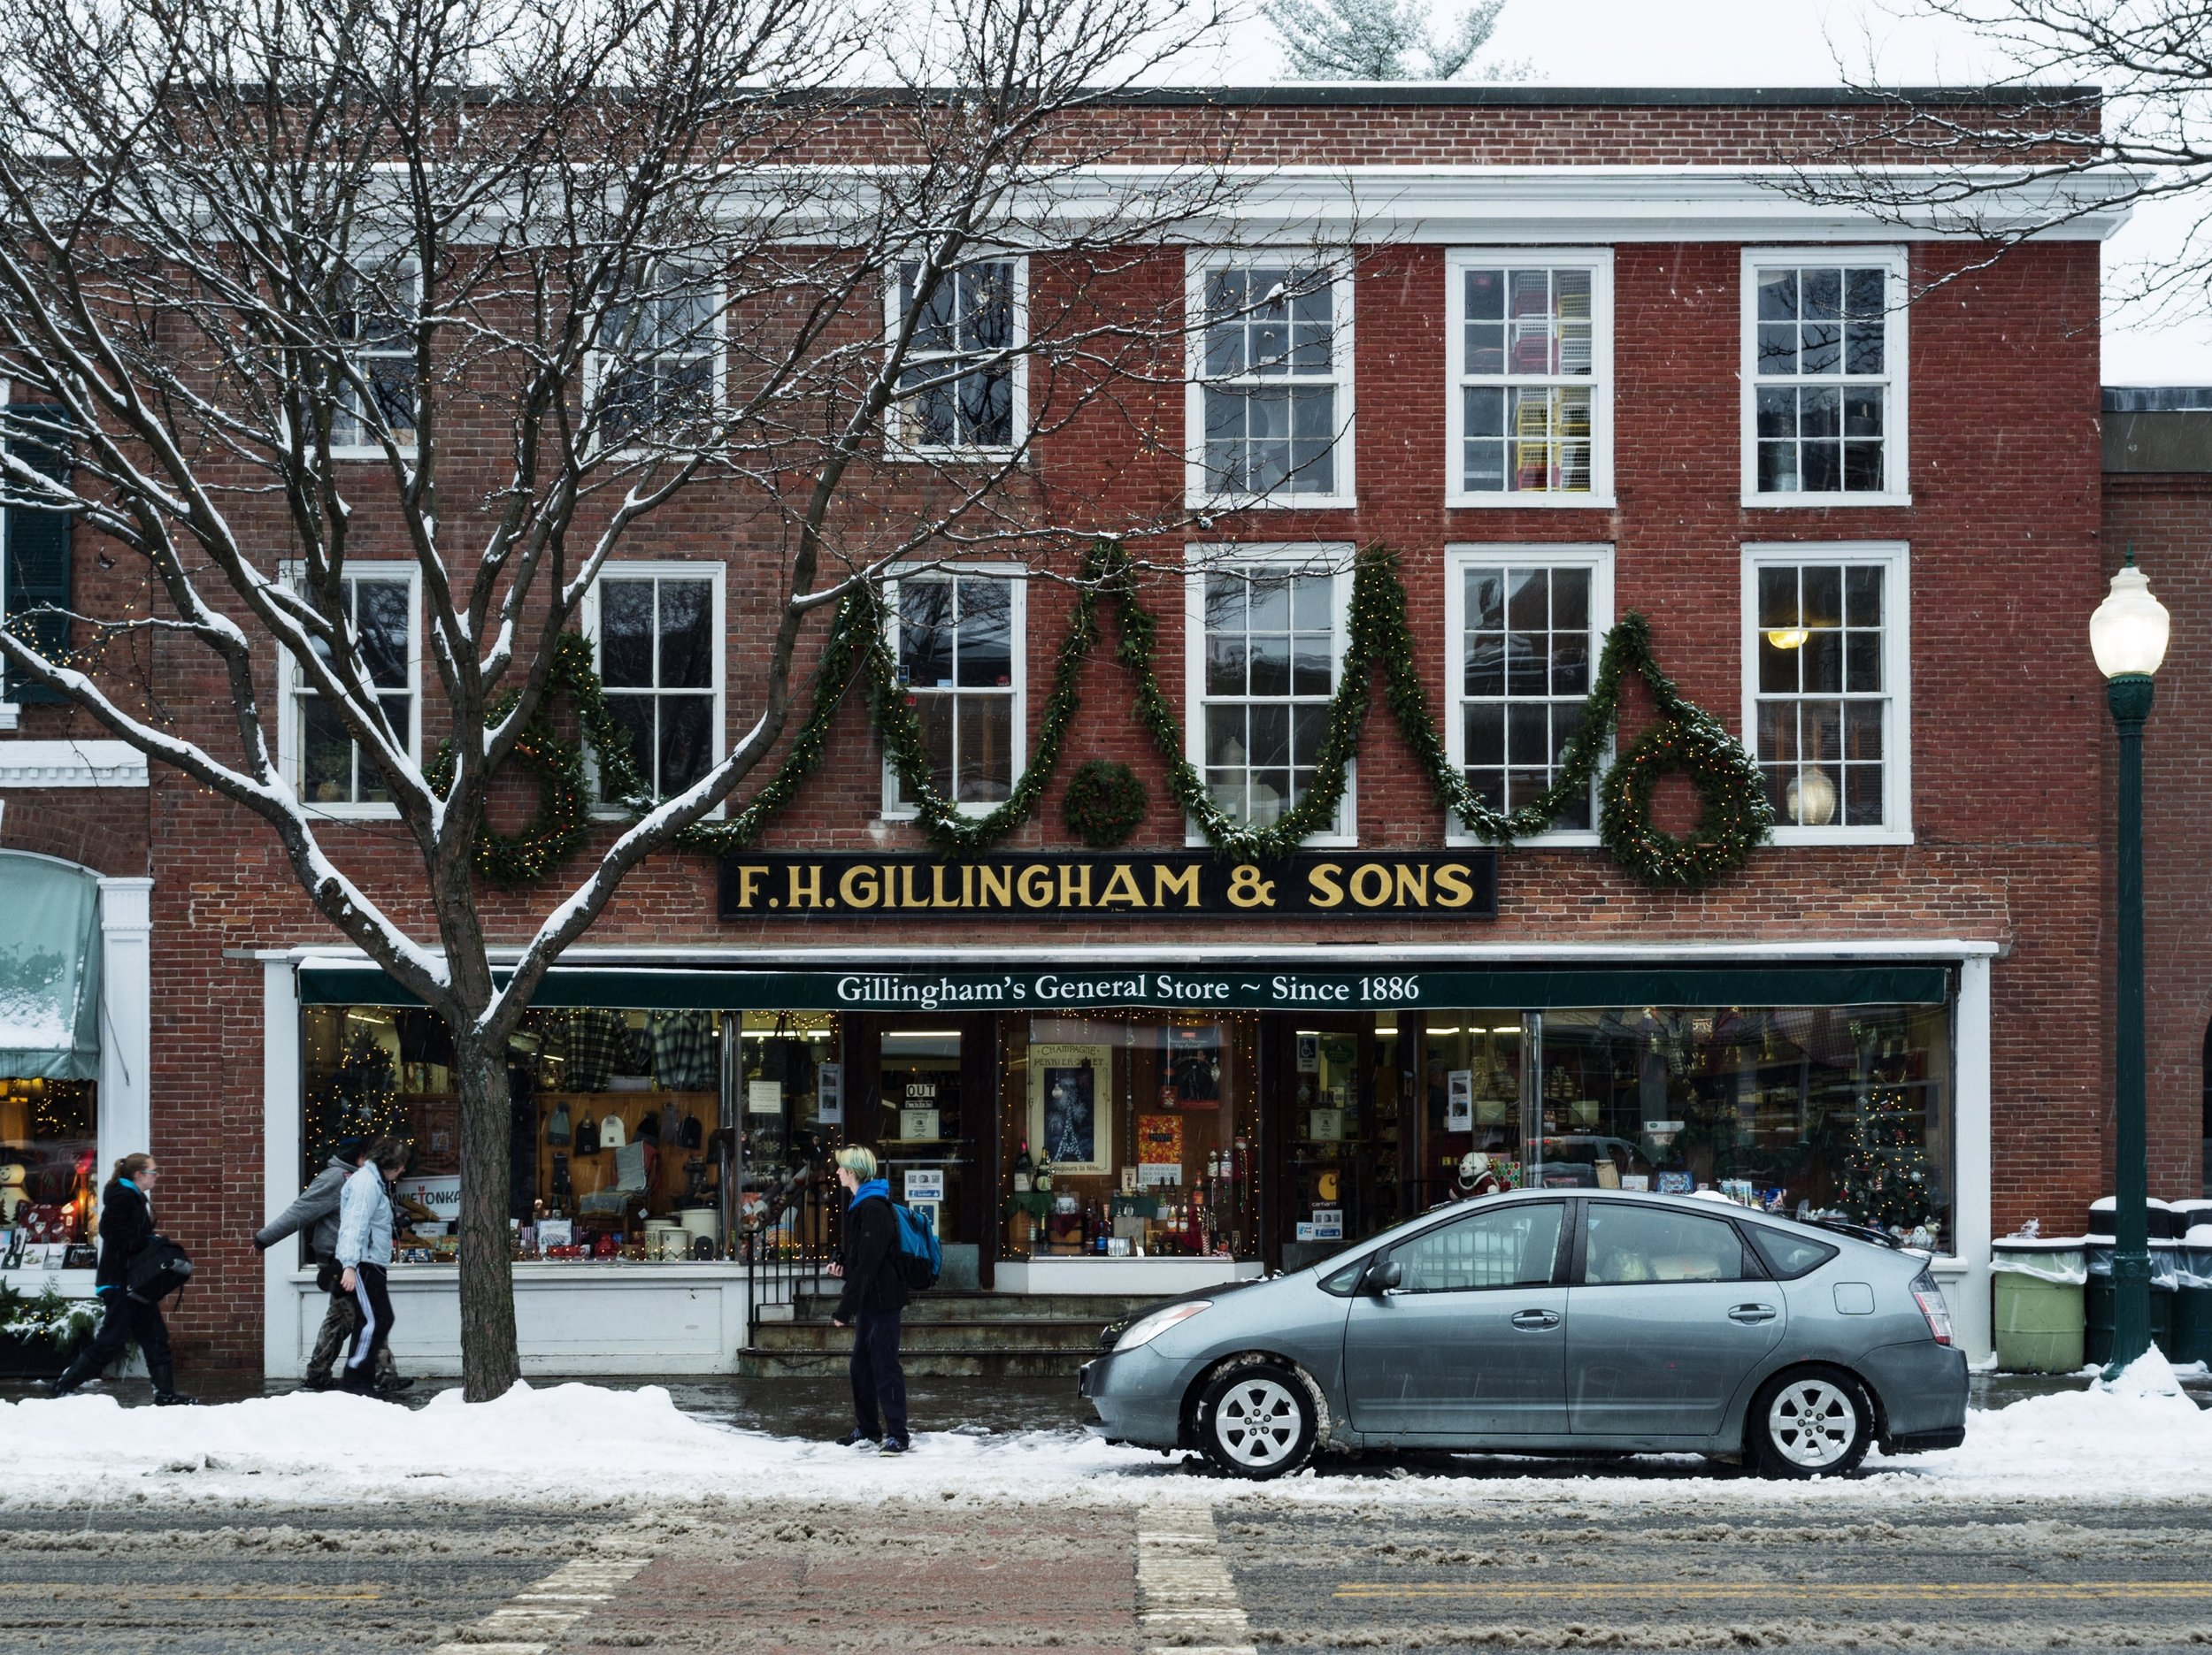 Gillingham's General store in Woodstock, VT